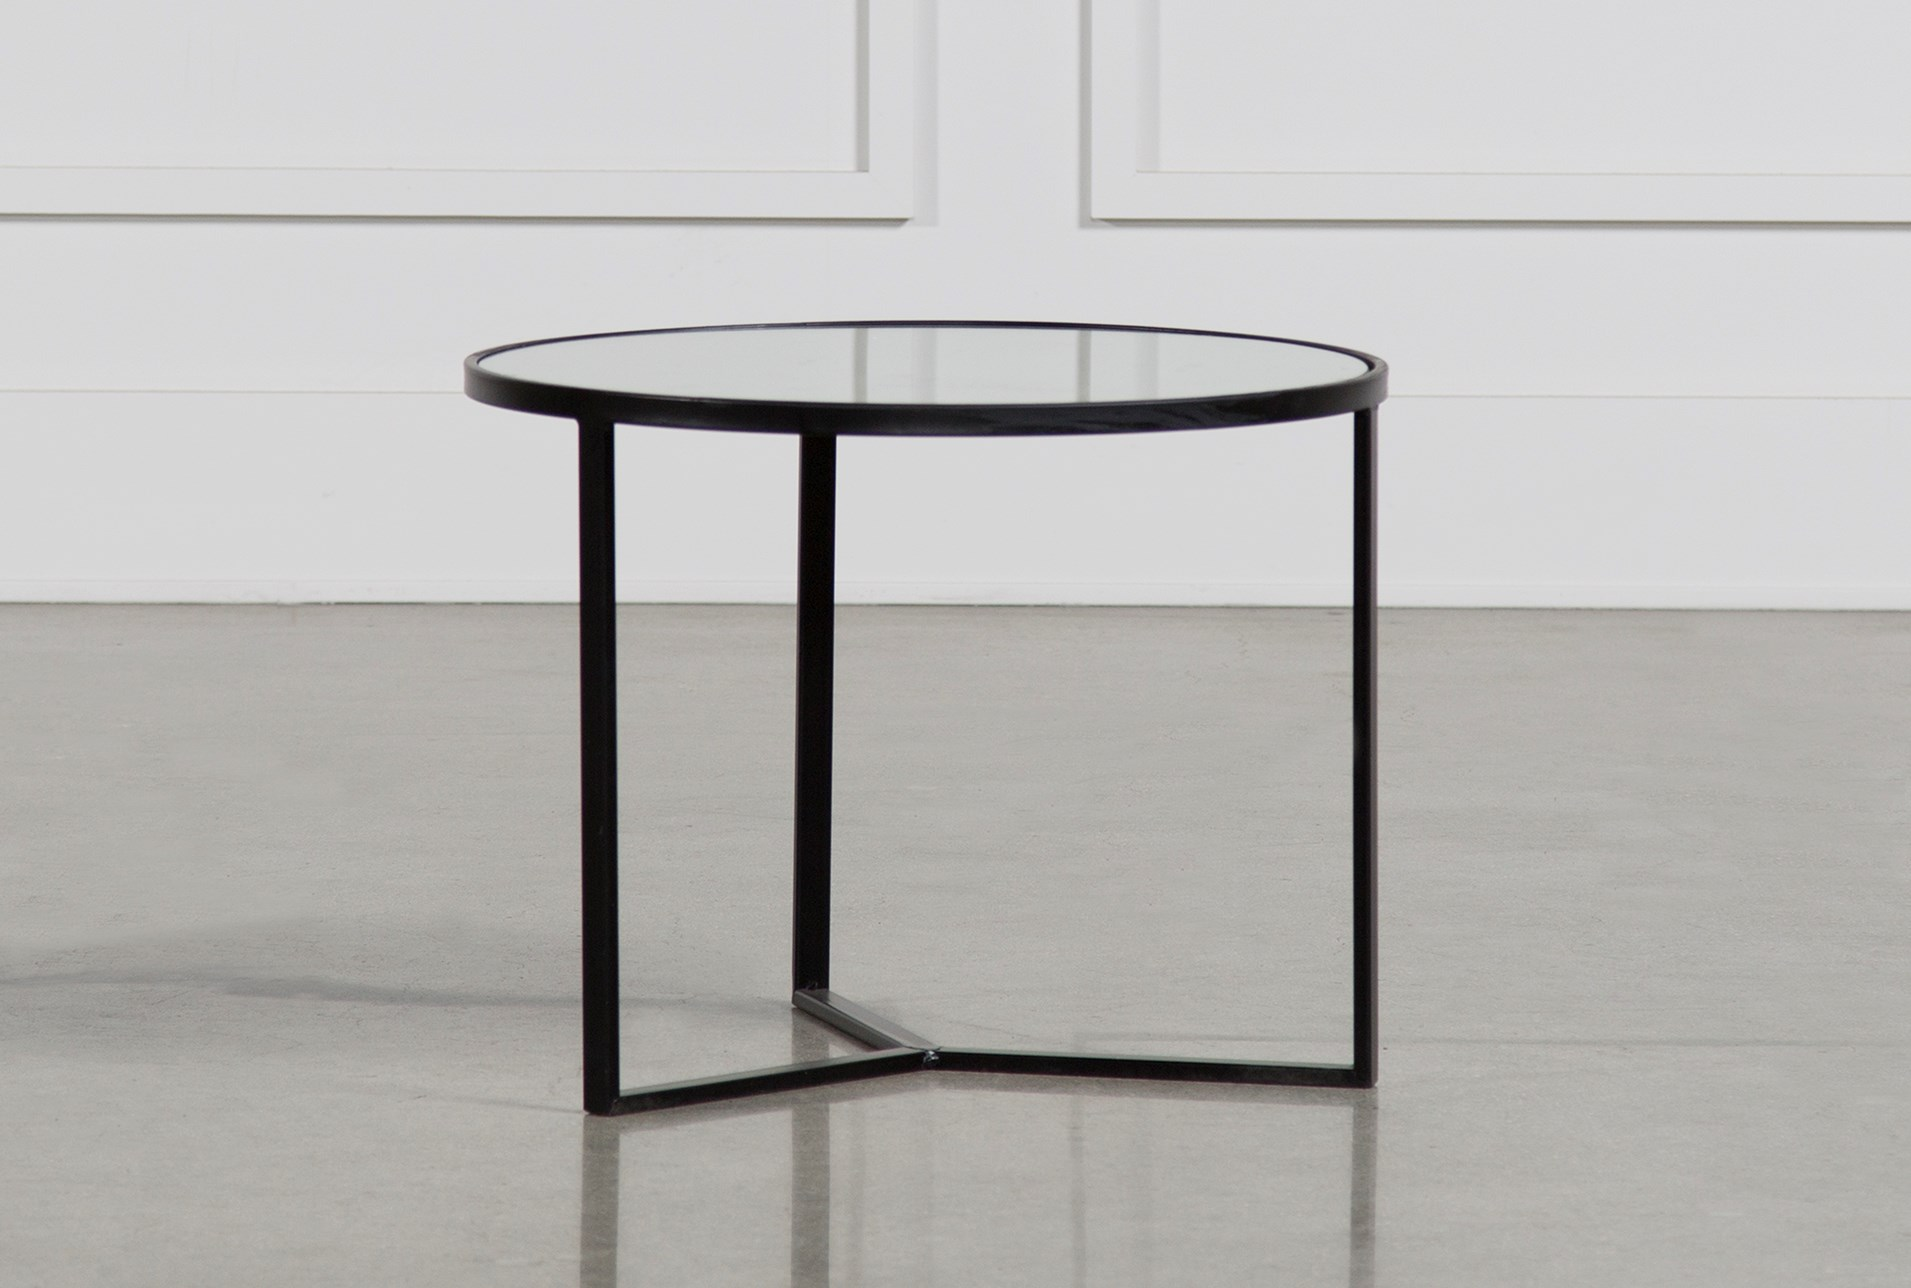 design stools asian table with glass ideas coffee marion